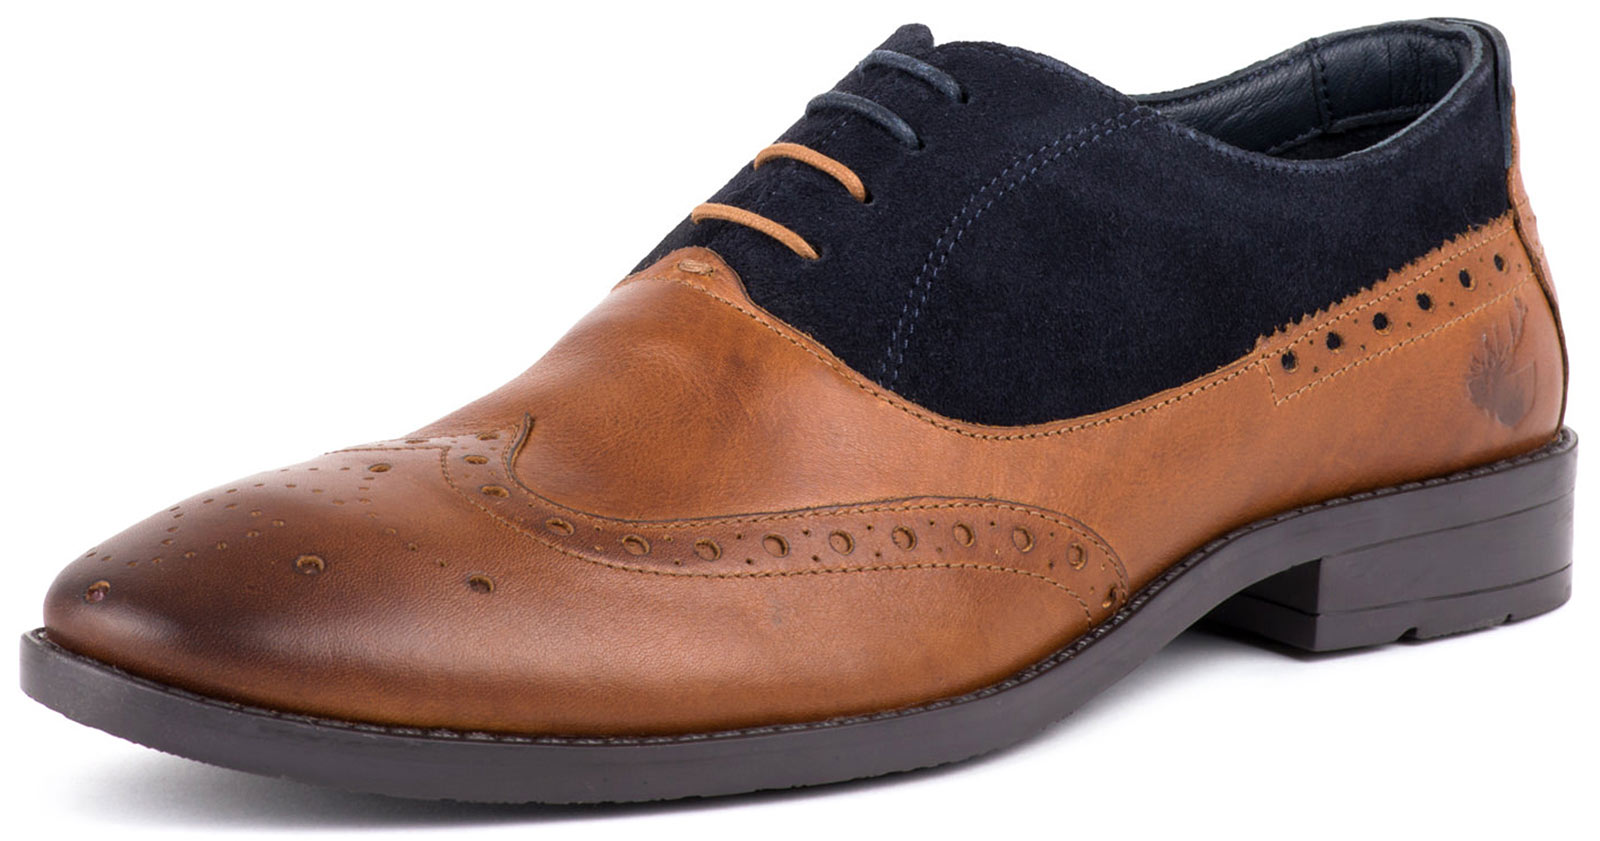 New Goodwin Smith Denby Mens Oxford Brogue Lace Up shoes ALL SIZES